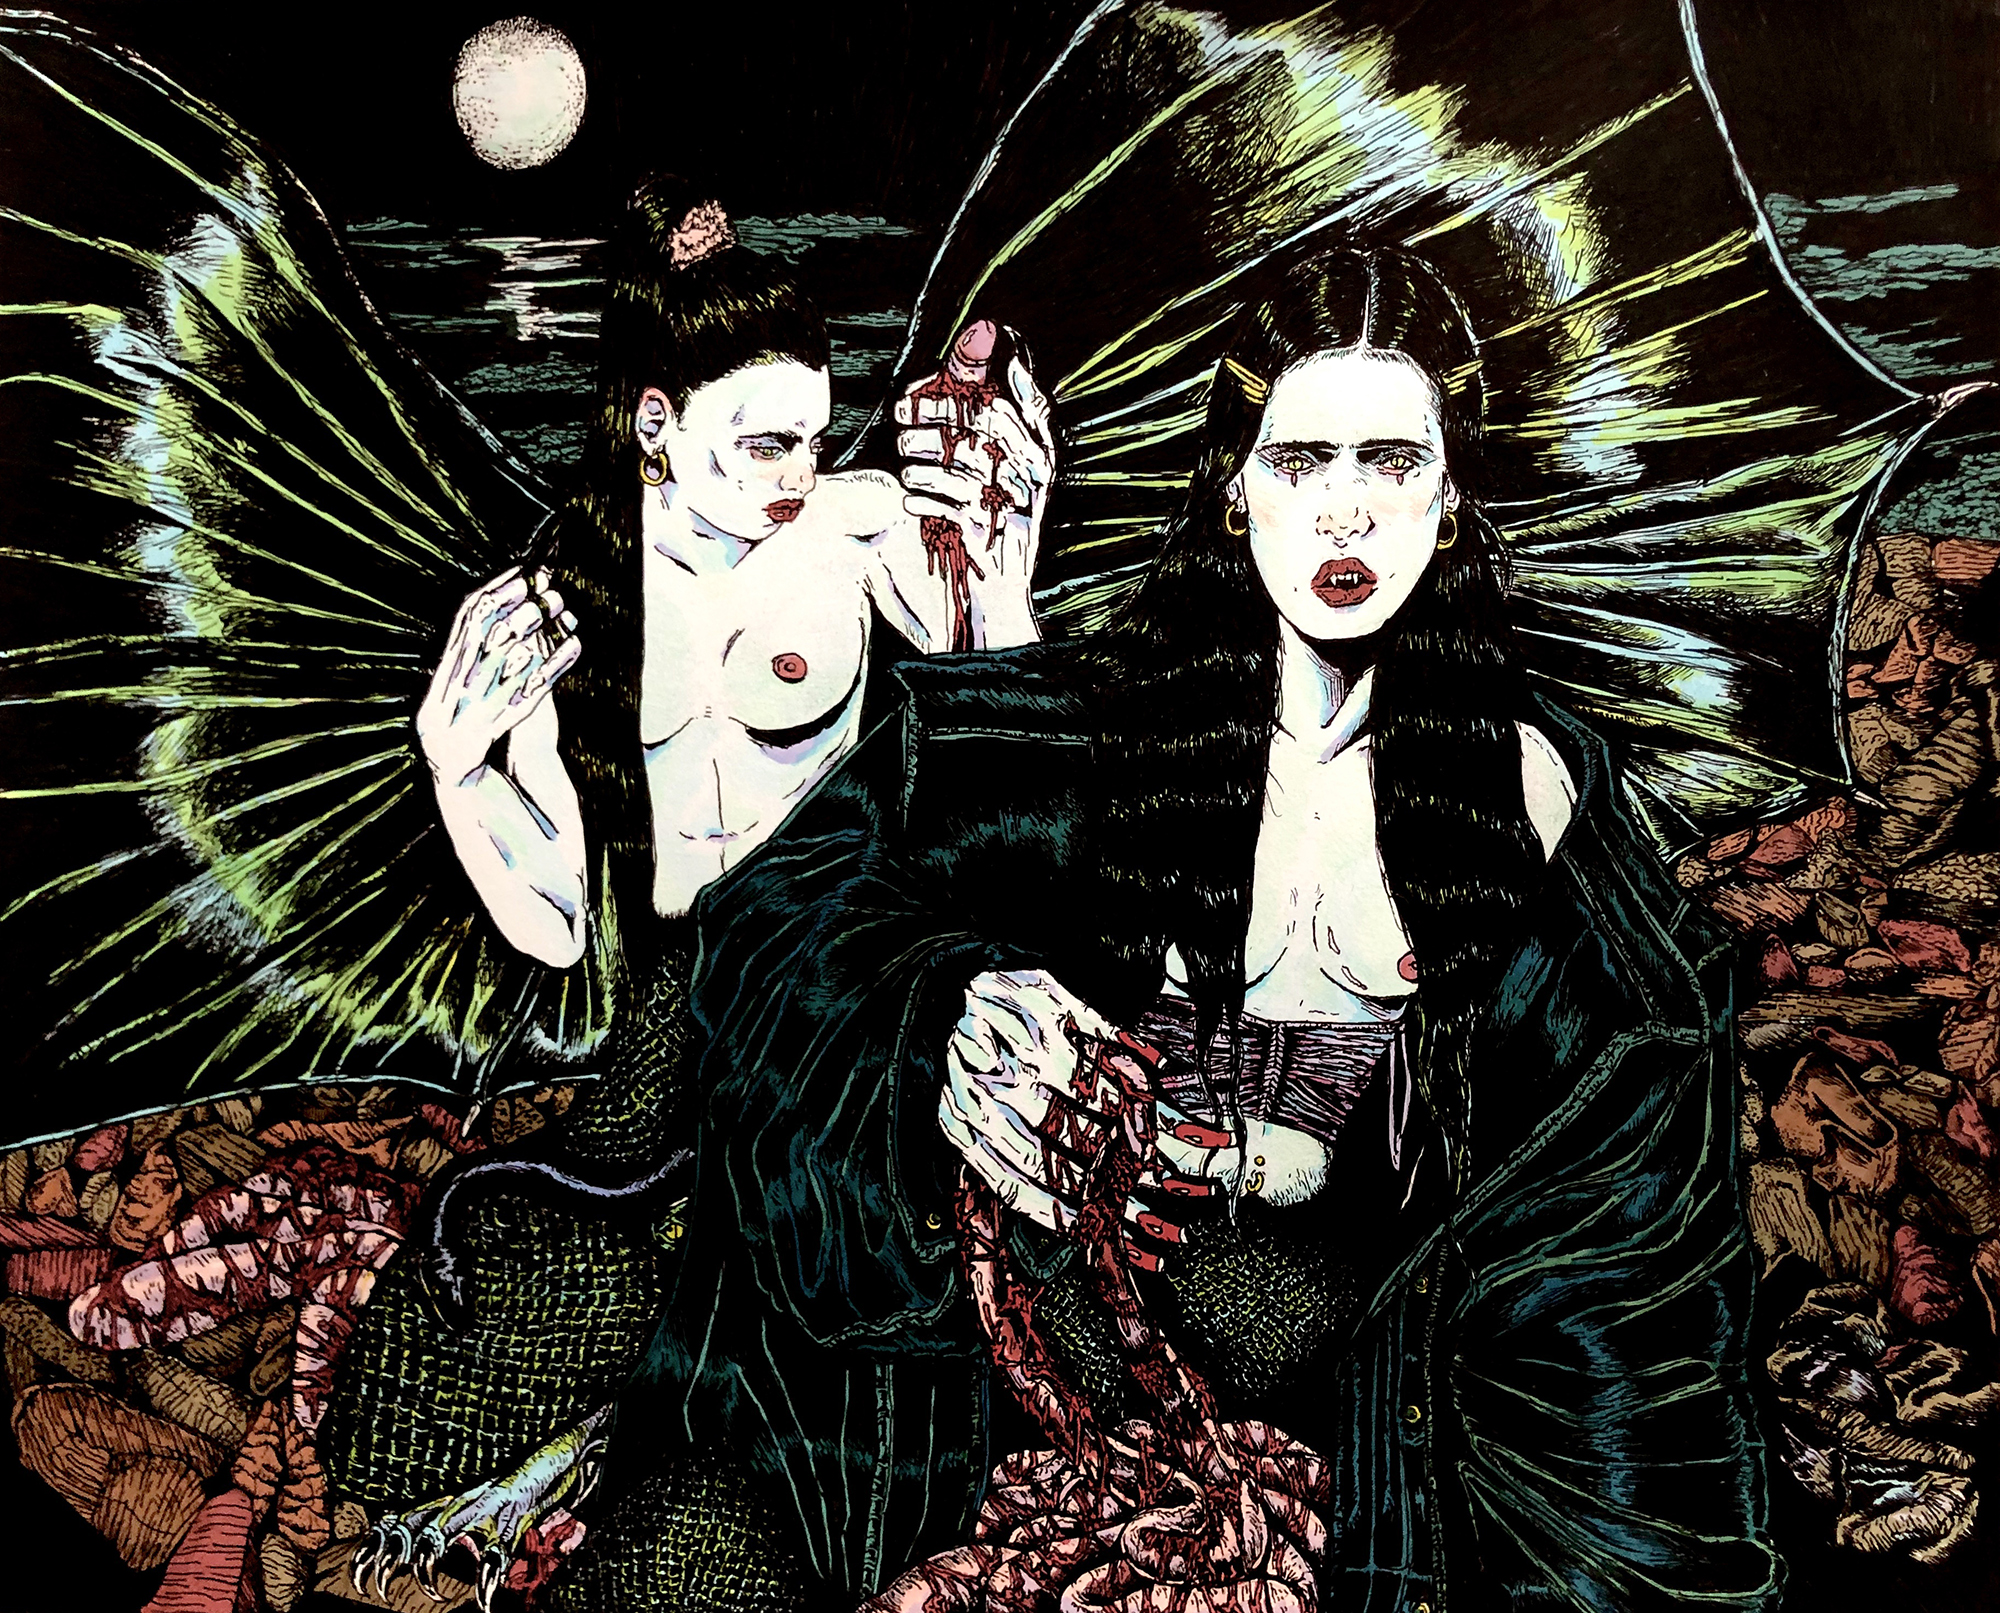 Sisters of Thelxiepeia and Ligeia